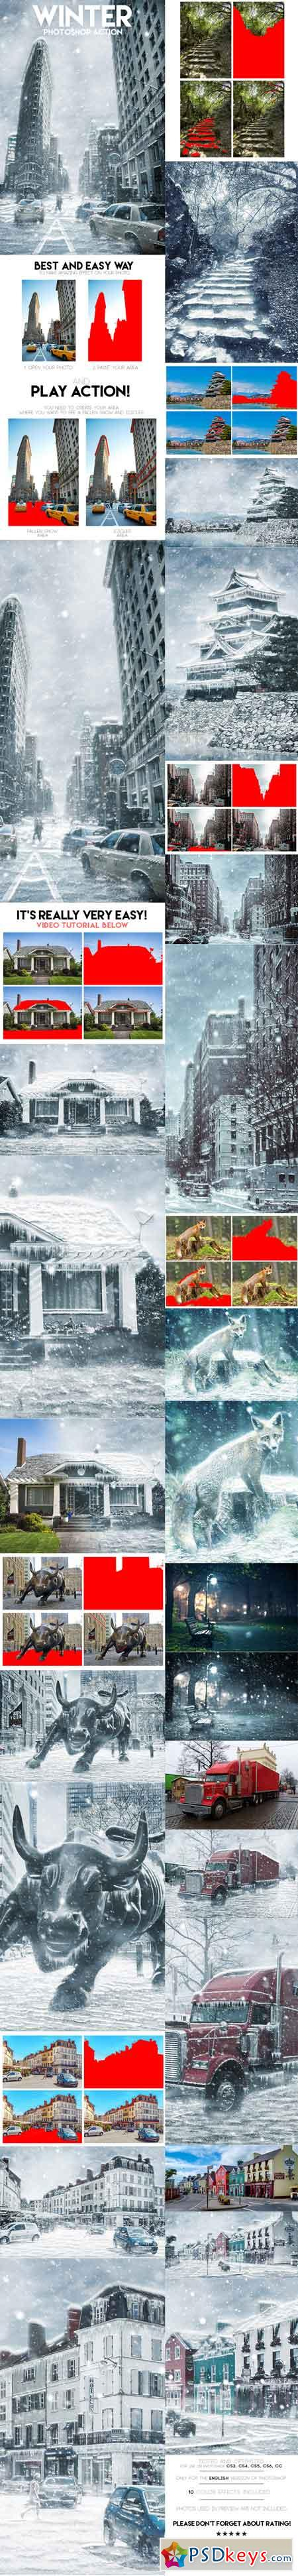 Winter Photoshop Action 19315141